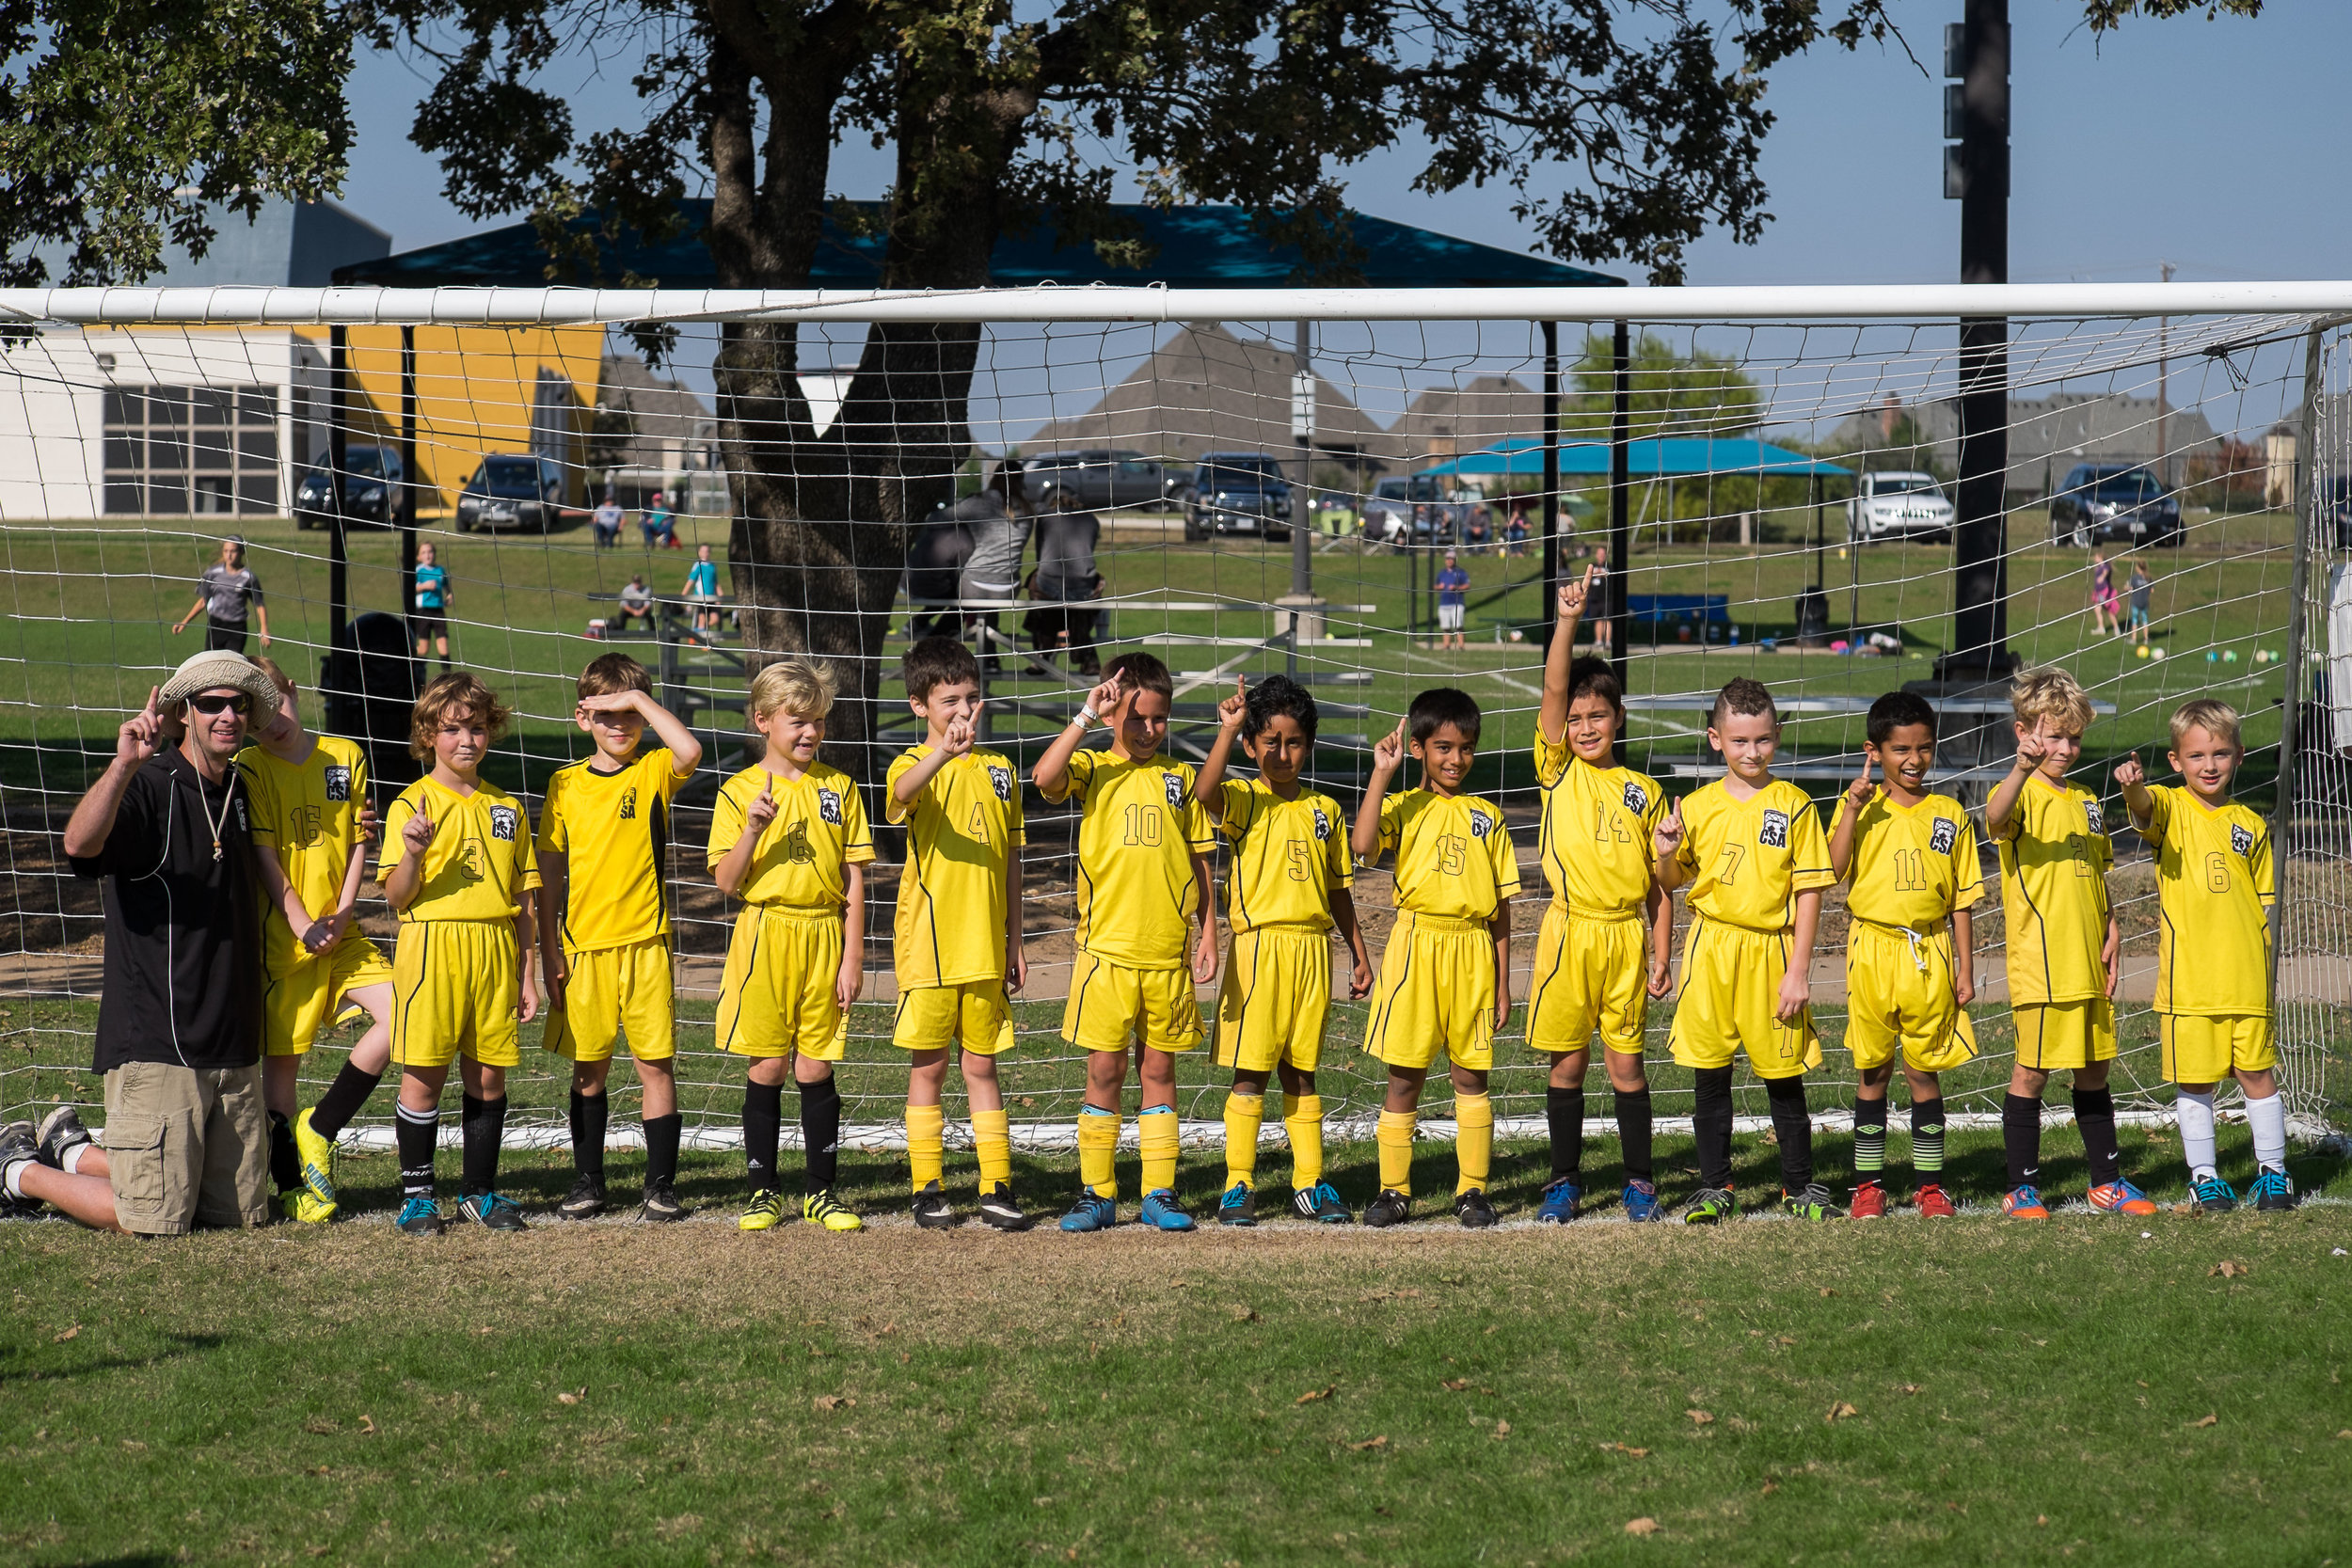 We are so proud of Michael and his soccer team! They finished No. 1 in their age group and have worked so hard these past few months. Go Mighty Minions!